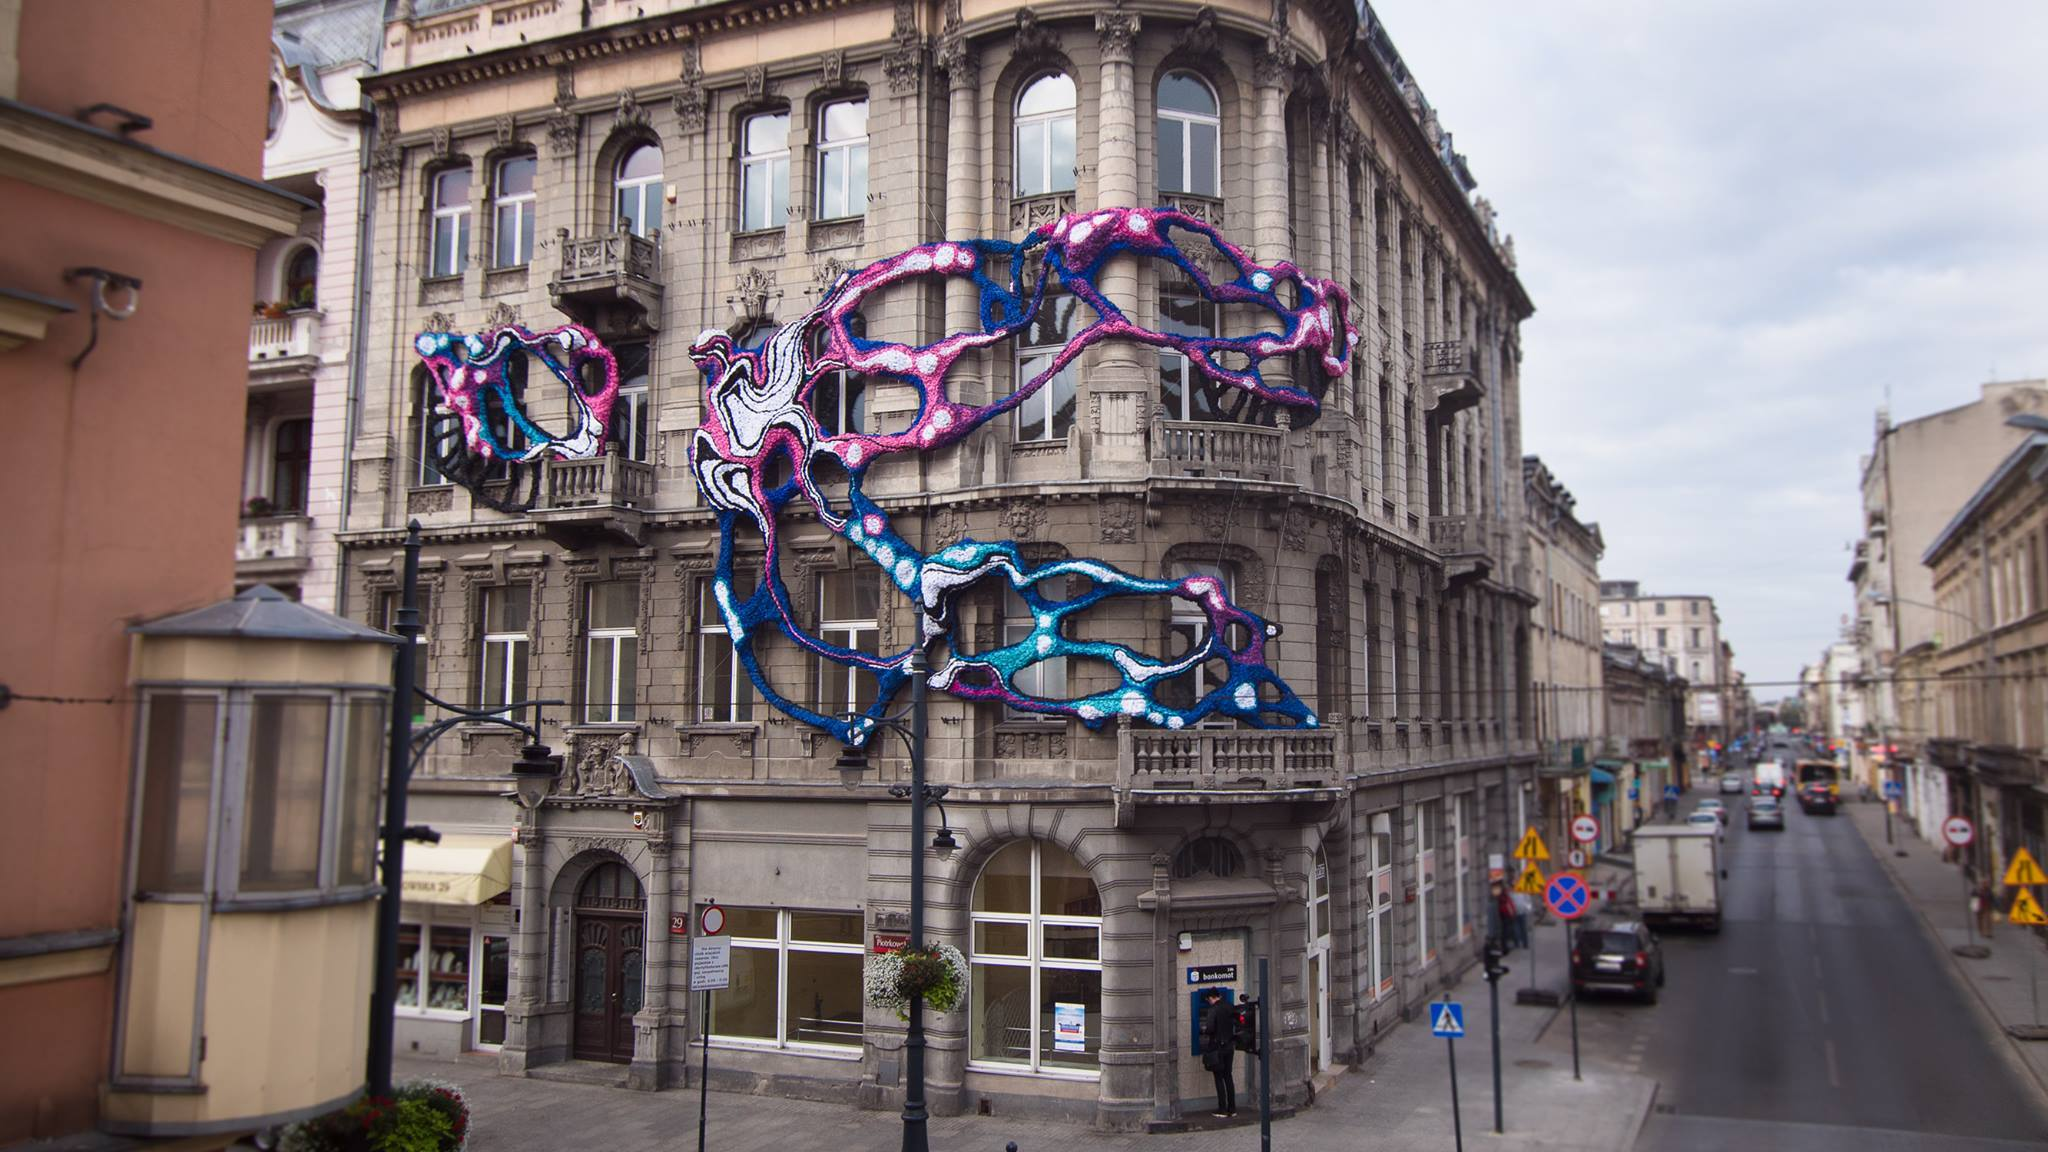 Crystal Wagner instalation in Lodz, Poland